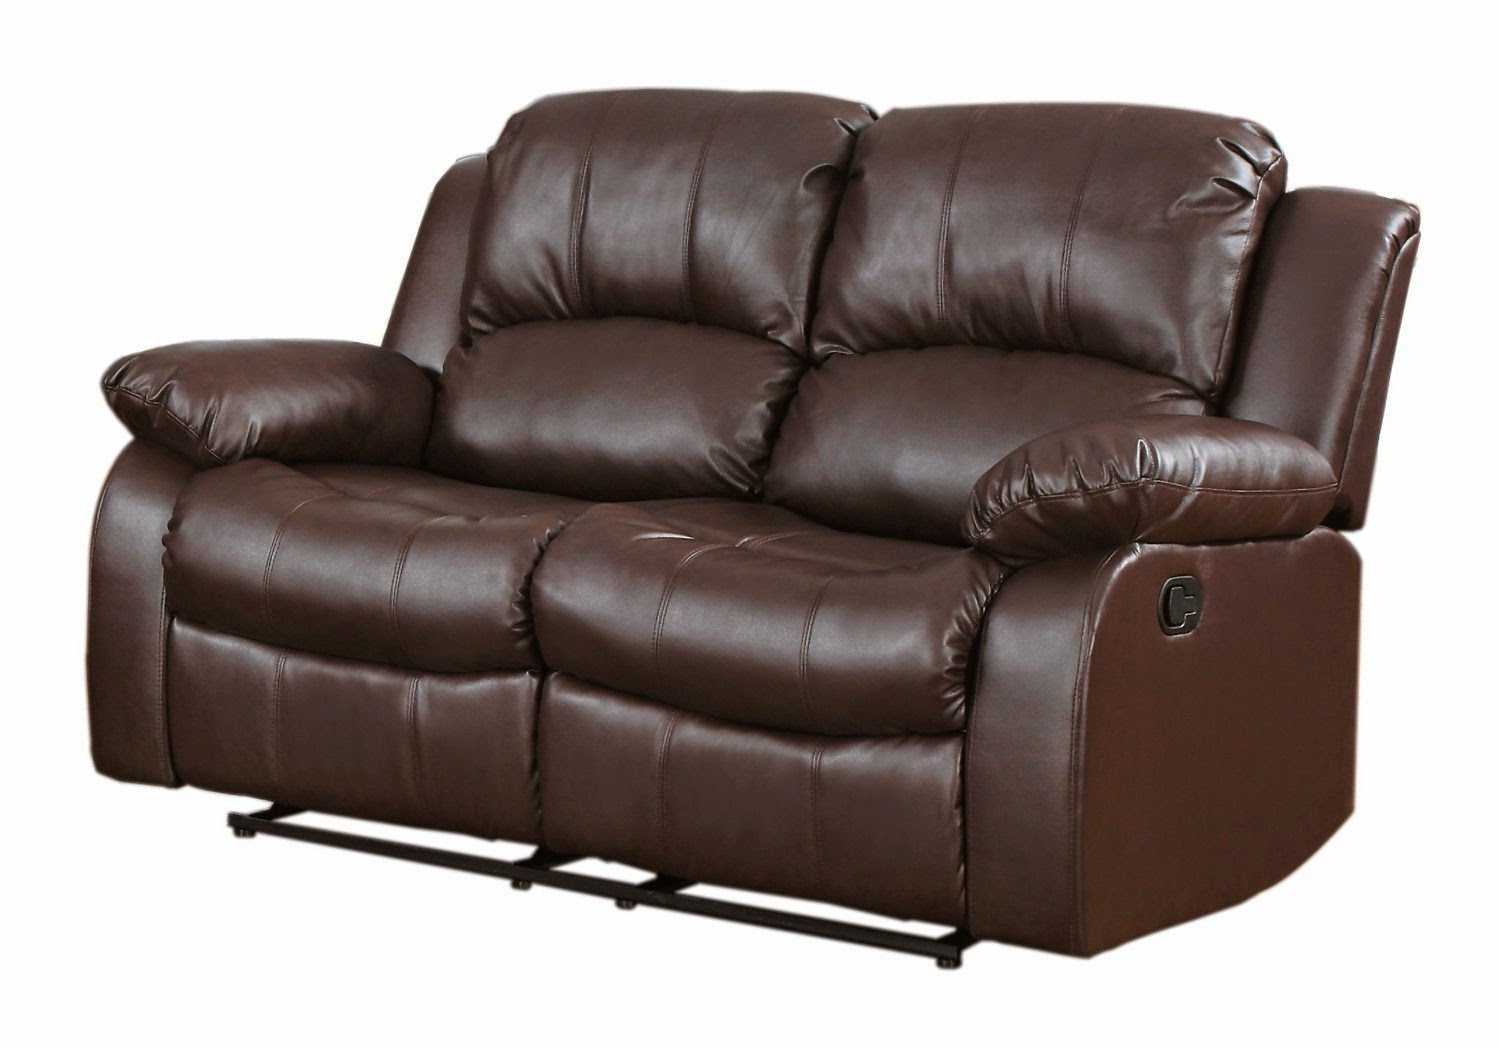 Best Leather Chairs Best Leather Reclining Sofa Brands Reviews 2 Seat